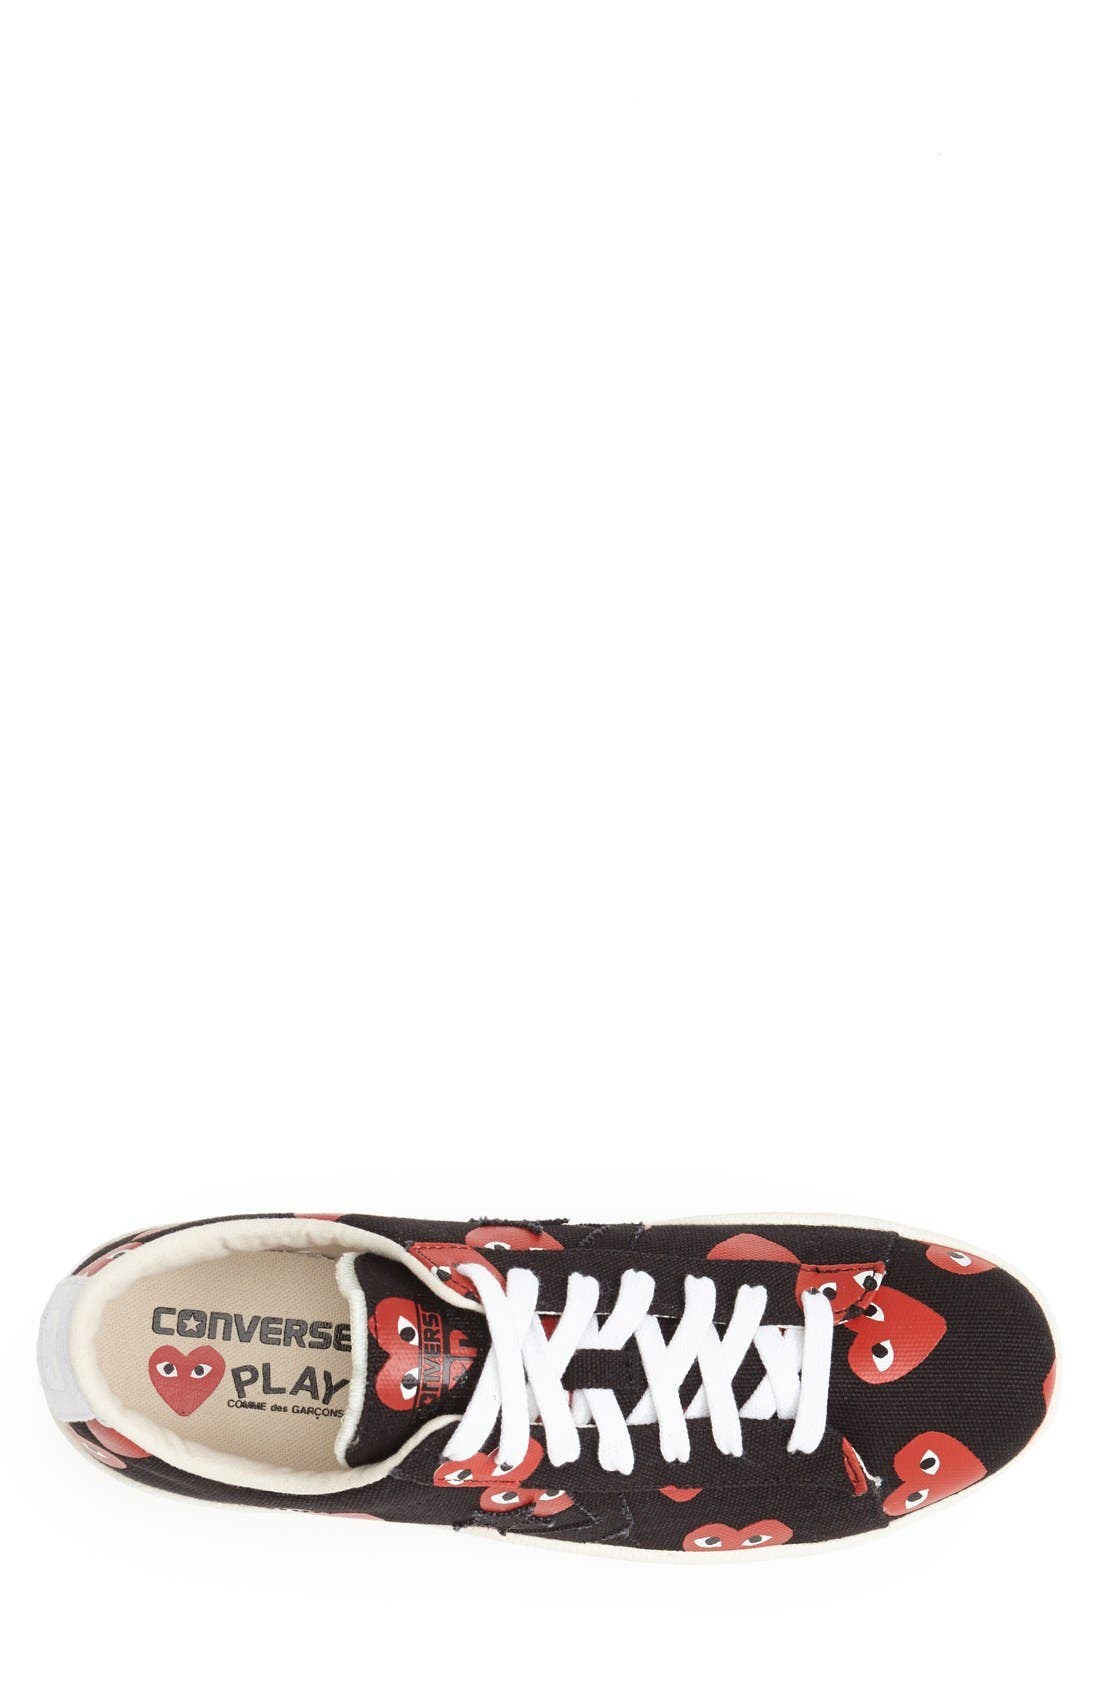 PLAY x Converse Chuck Taylor<sup>®</sup> Low Top Sneaker,                             Alternate thumbnail 3, color,                             001